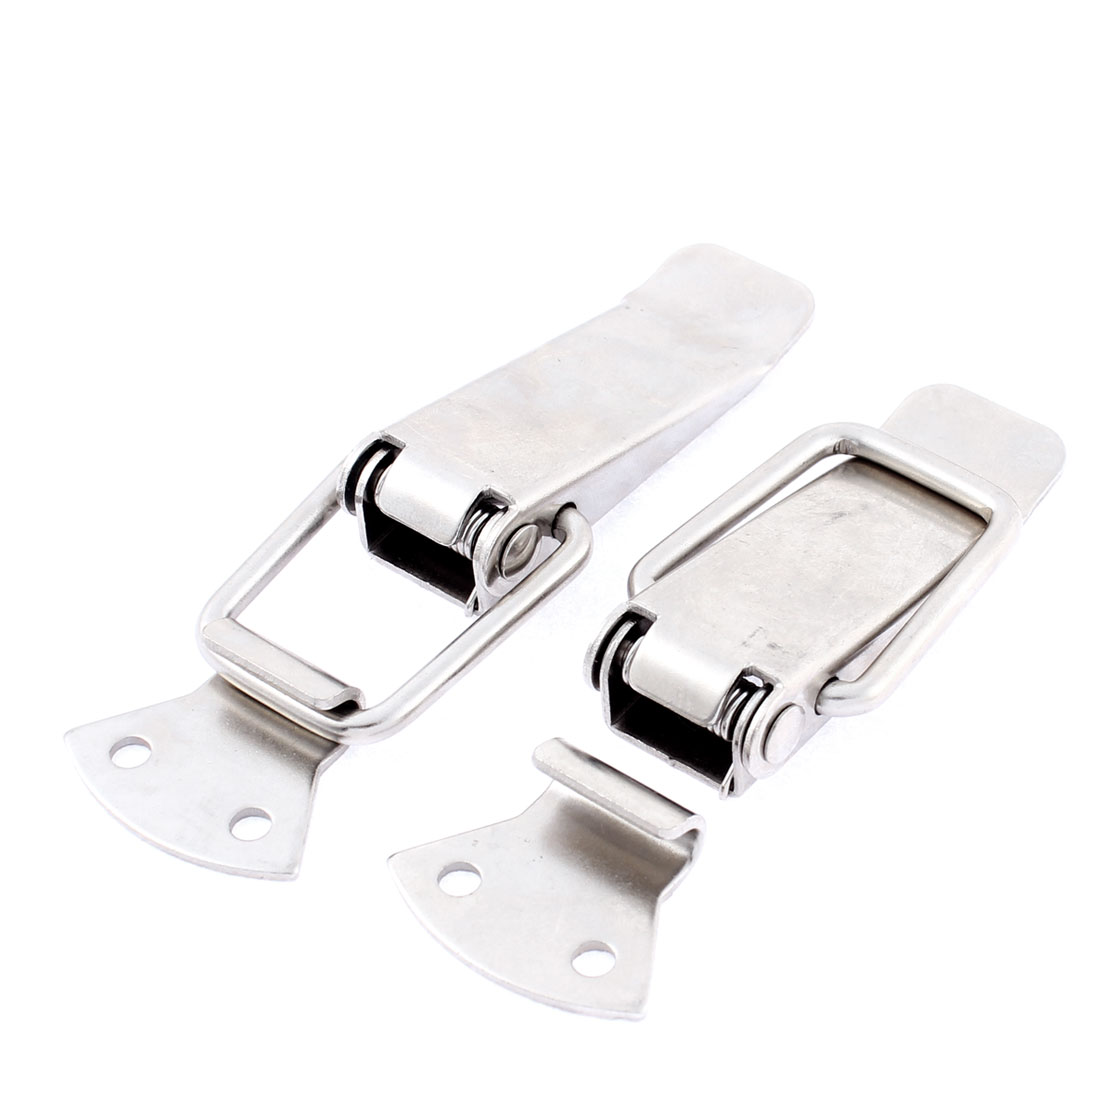 Case Box Chest Trunk Spring Loaded Toggle Latch Clamp Clip 2Pcs